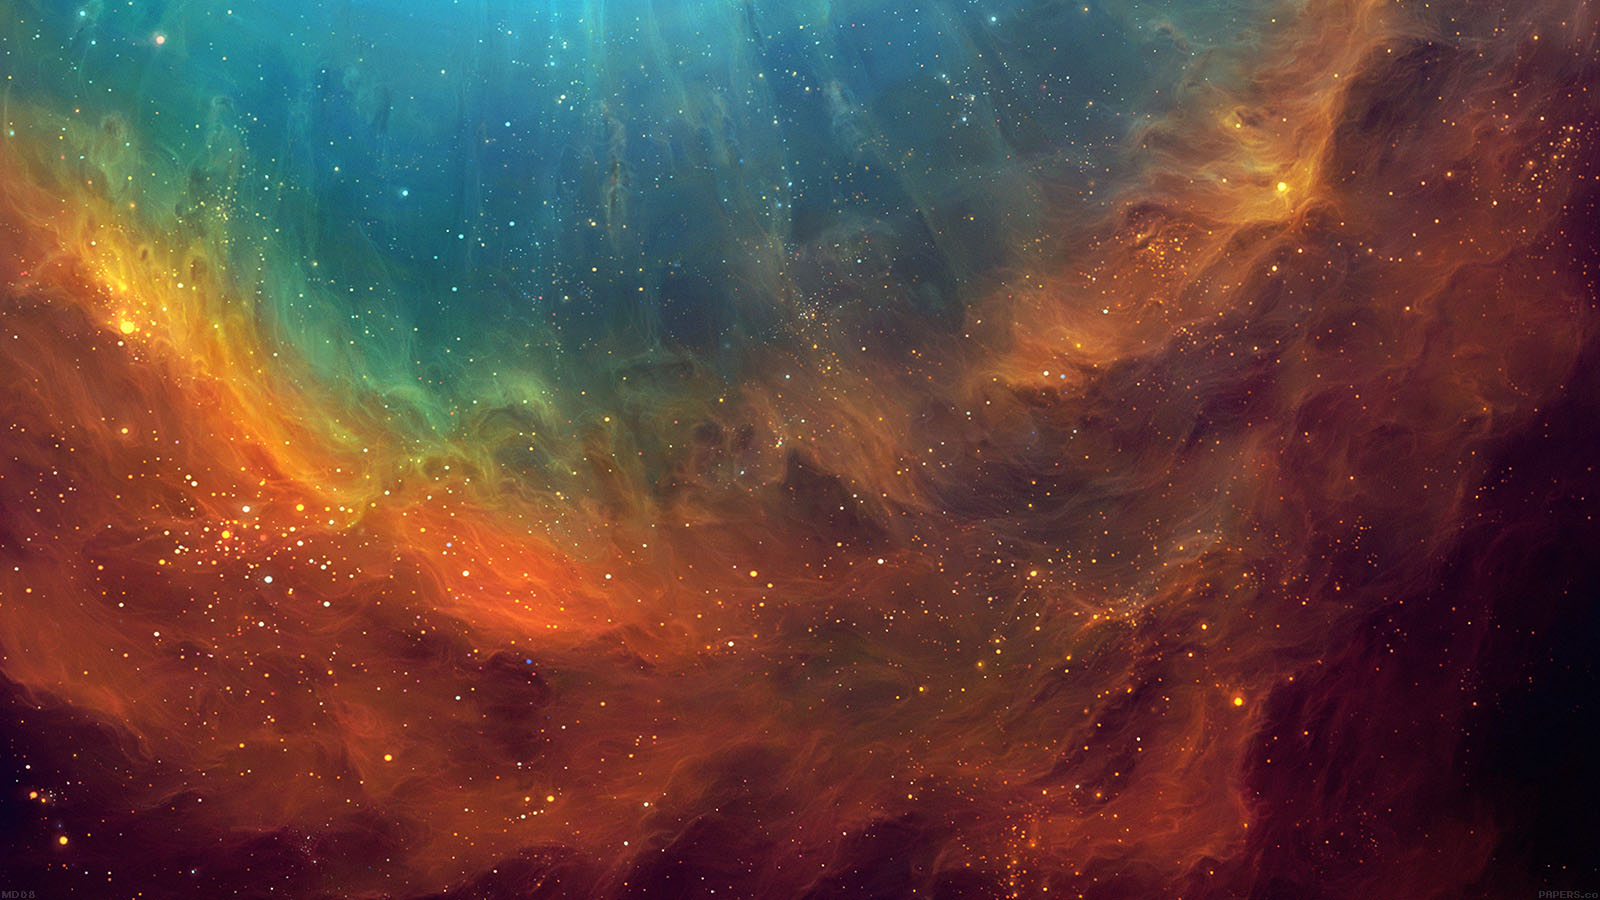 Iphone Se Fall Colors Wallpaper Md08 Wallpaper Galaxy Eye Space Stars Color Papers Co